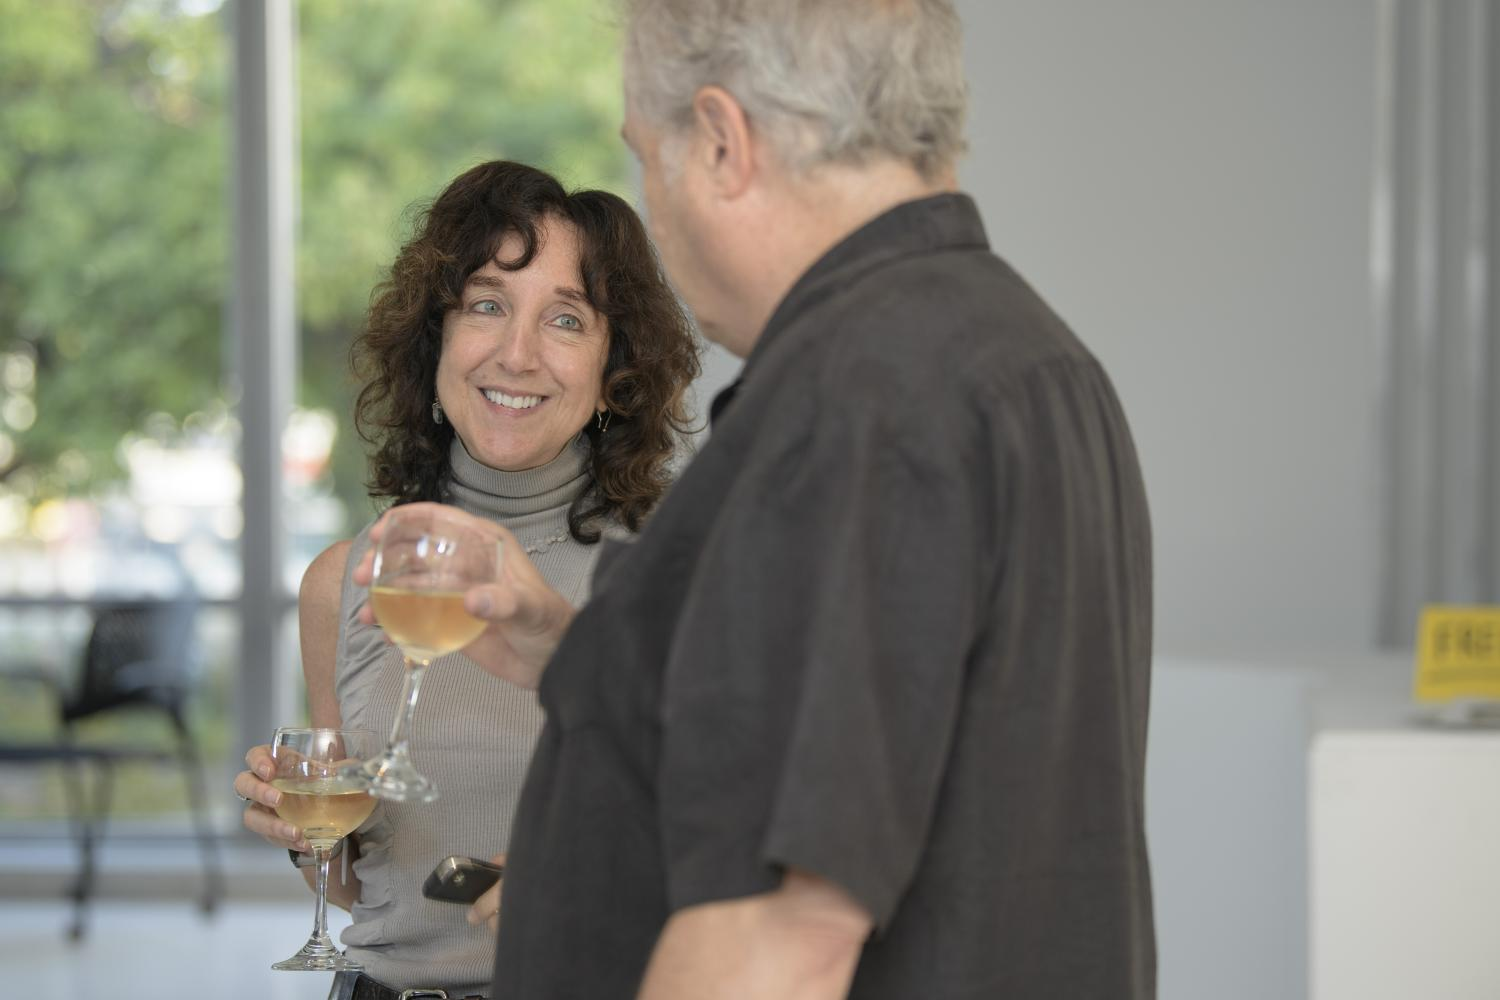 Photo of two people holding wine glasses and smiling at one another.